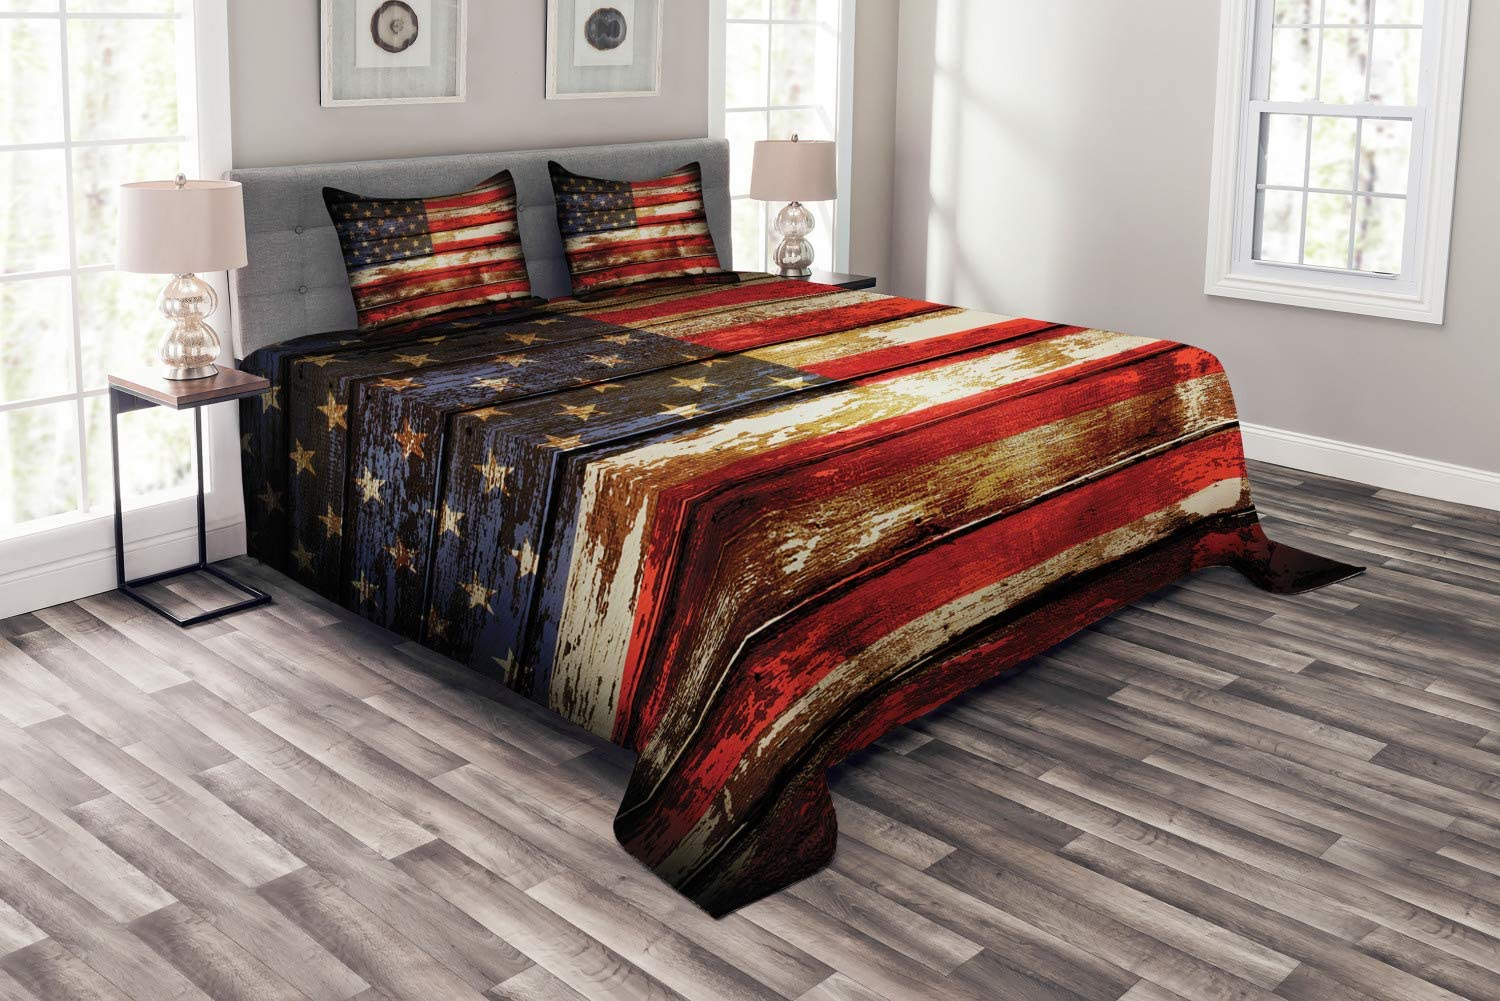 Ambesonne Credence American Flag Bedspread Us Tones Weath Rusty Long Beach Mall Old Over